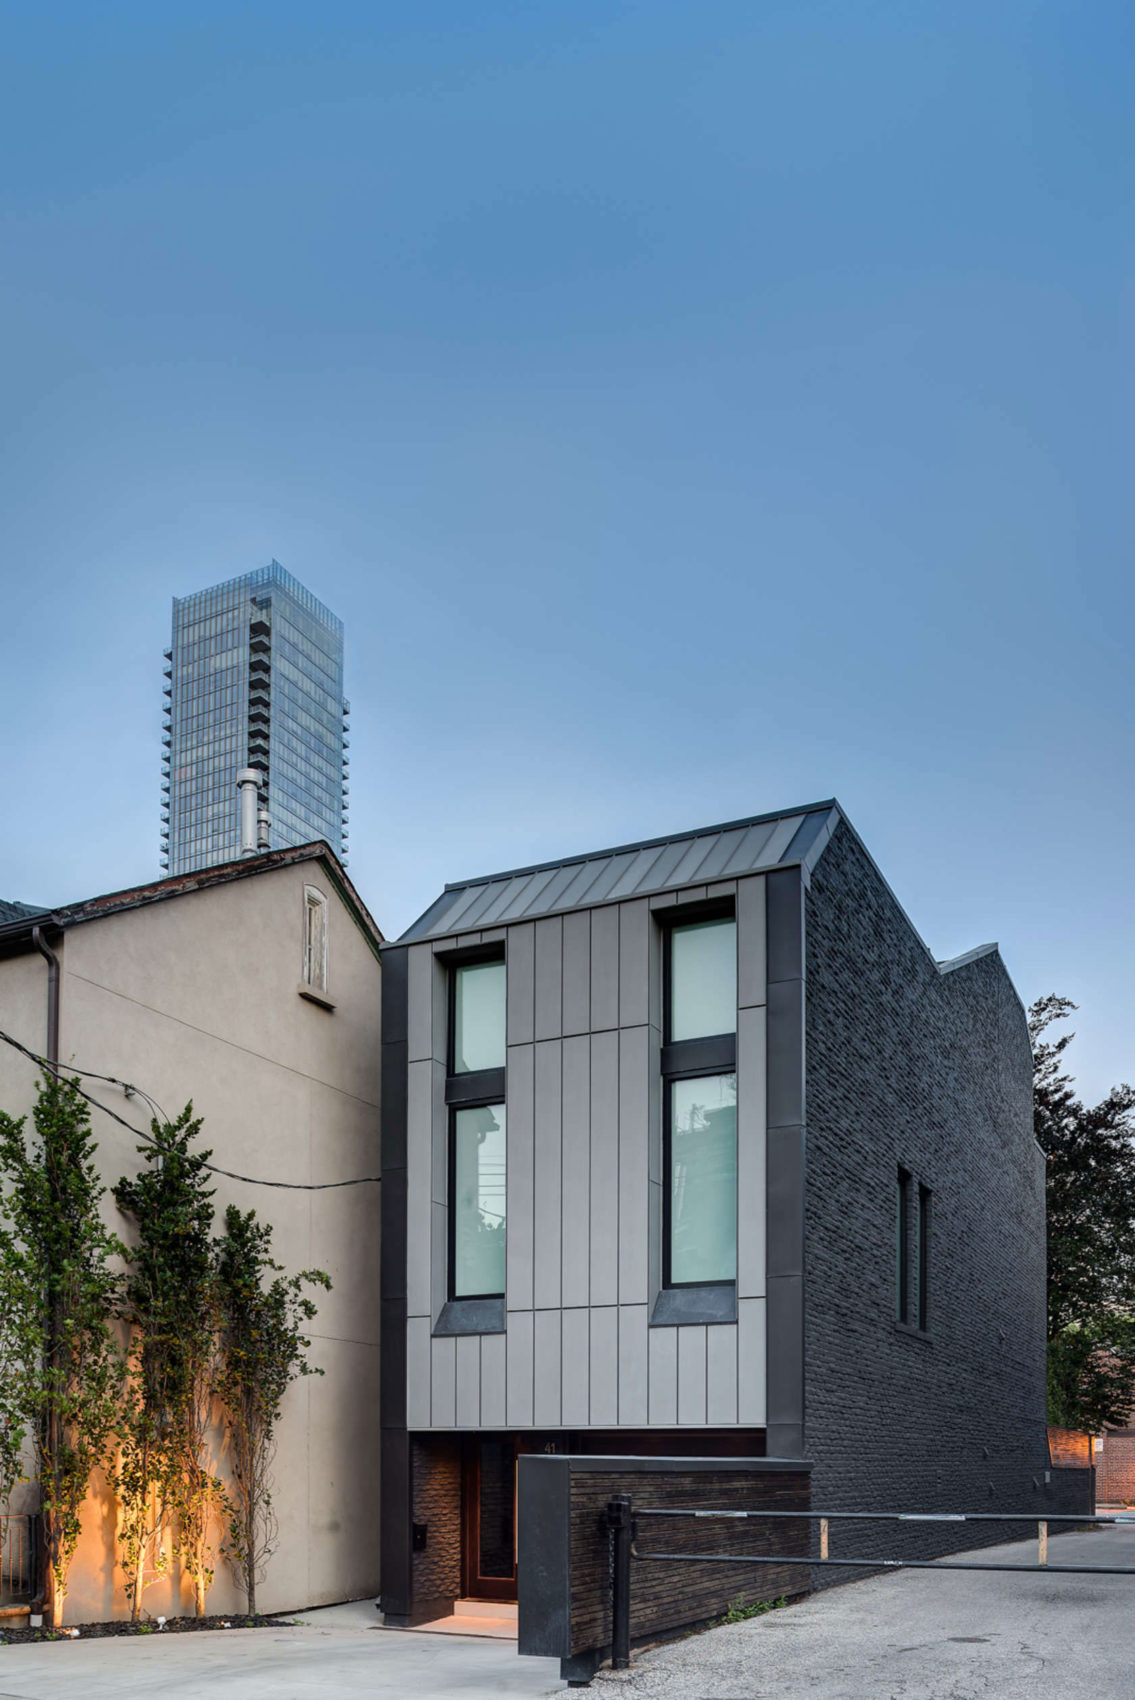 Berryman Street Residence by AUDAX Architecture (13)